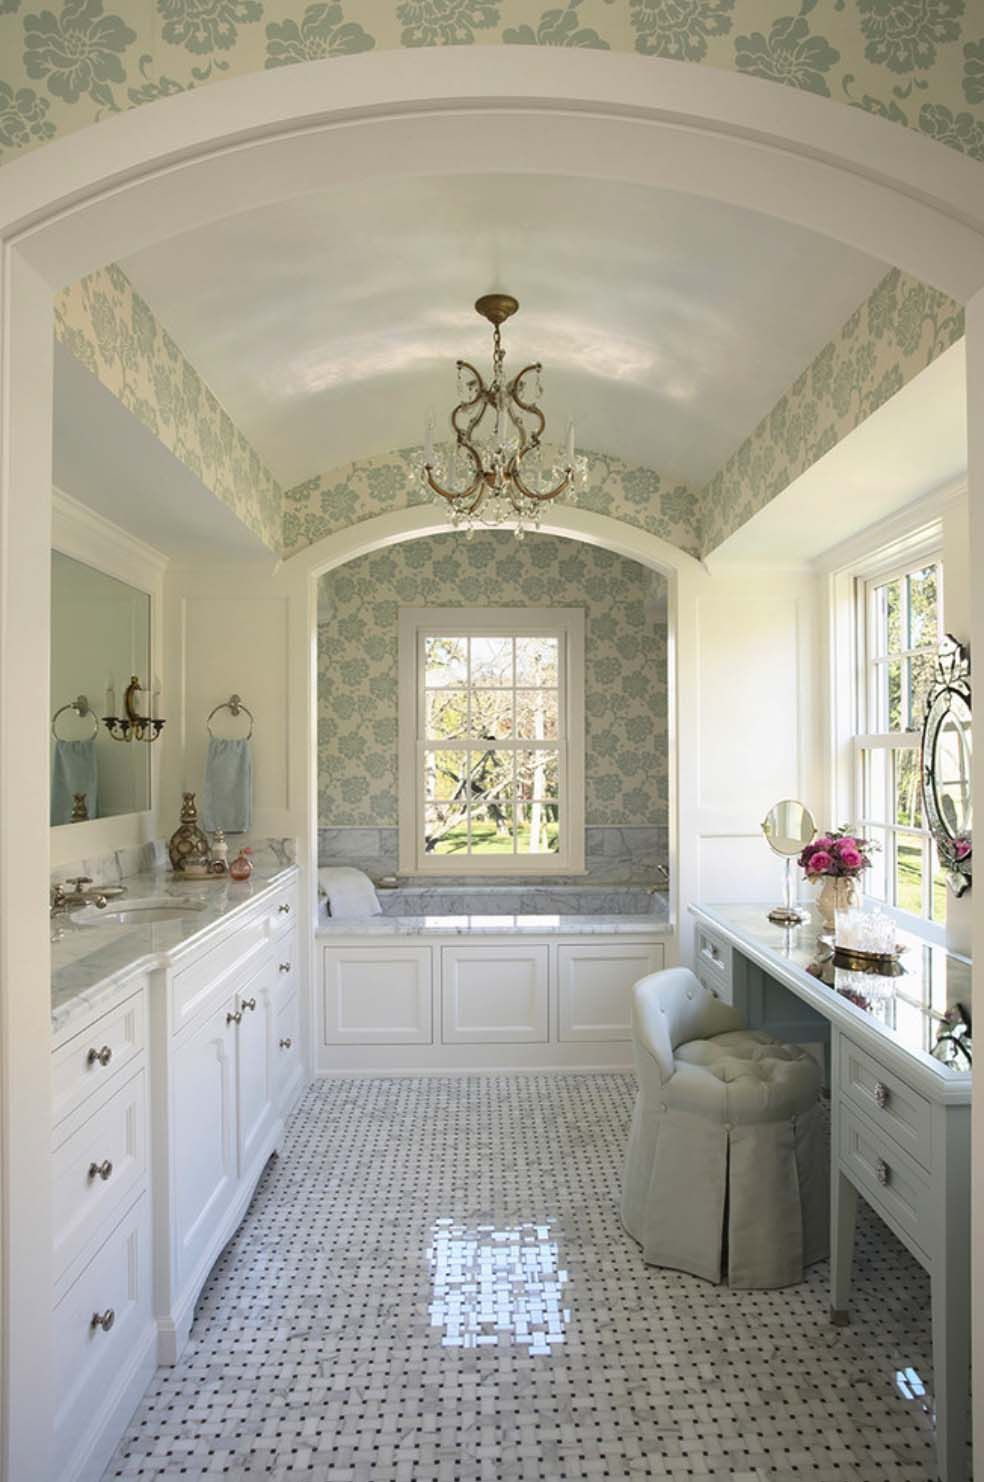 53 Most Fabulous Traditional Style Bathroom Designs Ever Captivating Traditional Bathroom Design Ideas Decorating Design